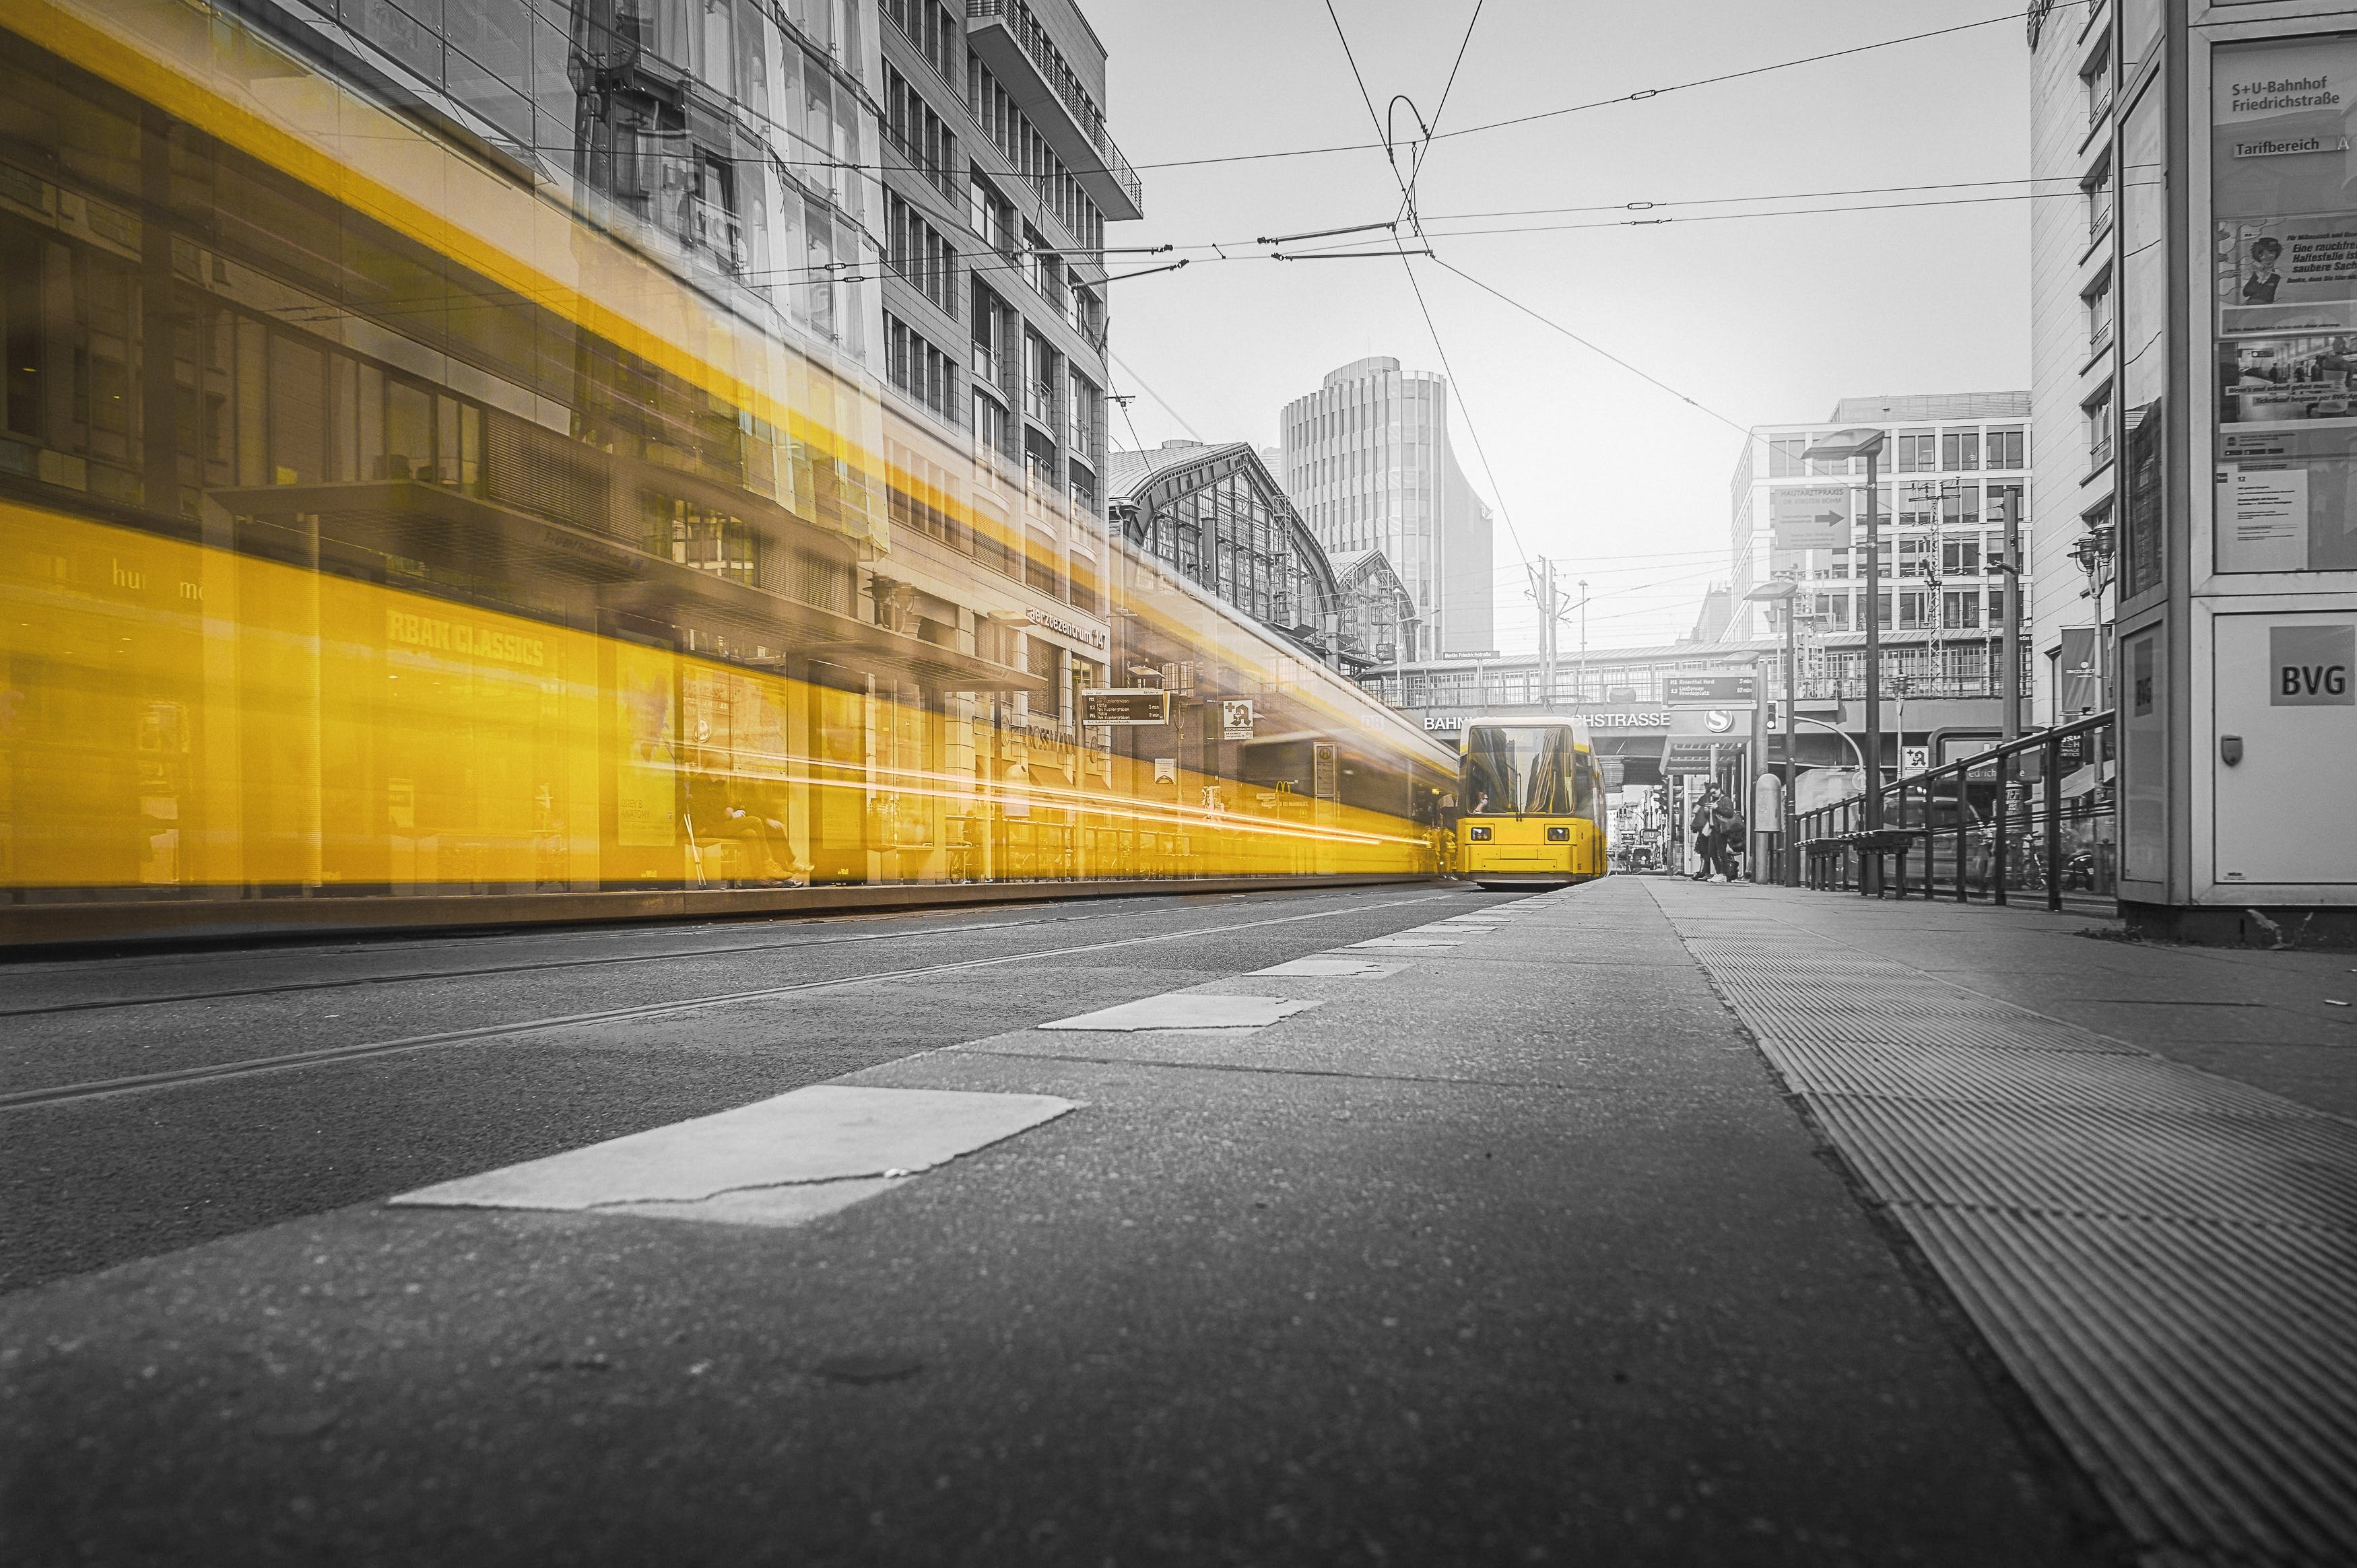 Selective Color Photography of Yellow Train Beside Building